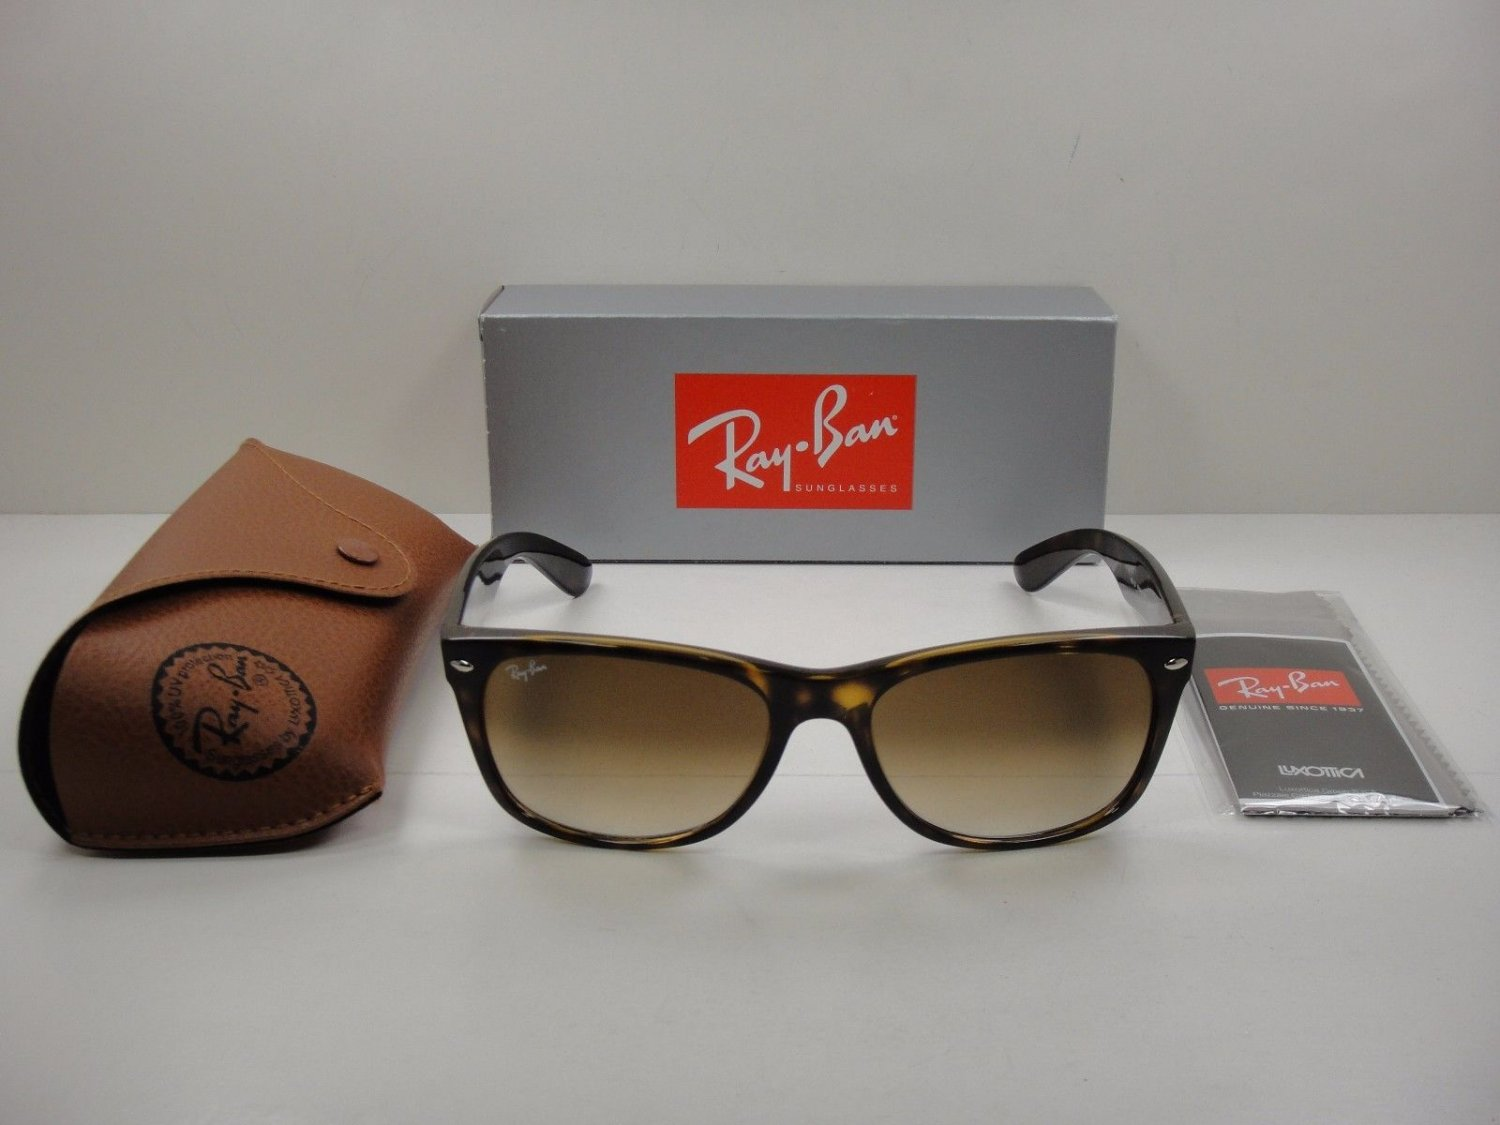 Ray-Ban Sunglasses 2132 710 New Wayfarer Brown Light Havana 52mm 100% New & Original